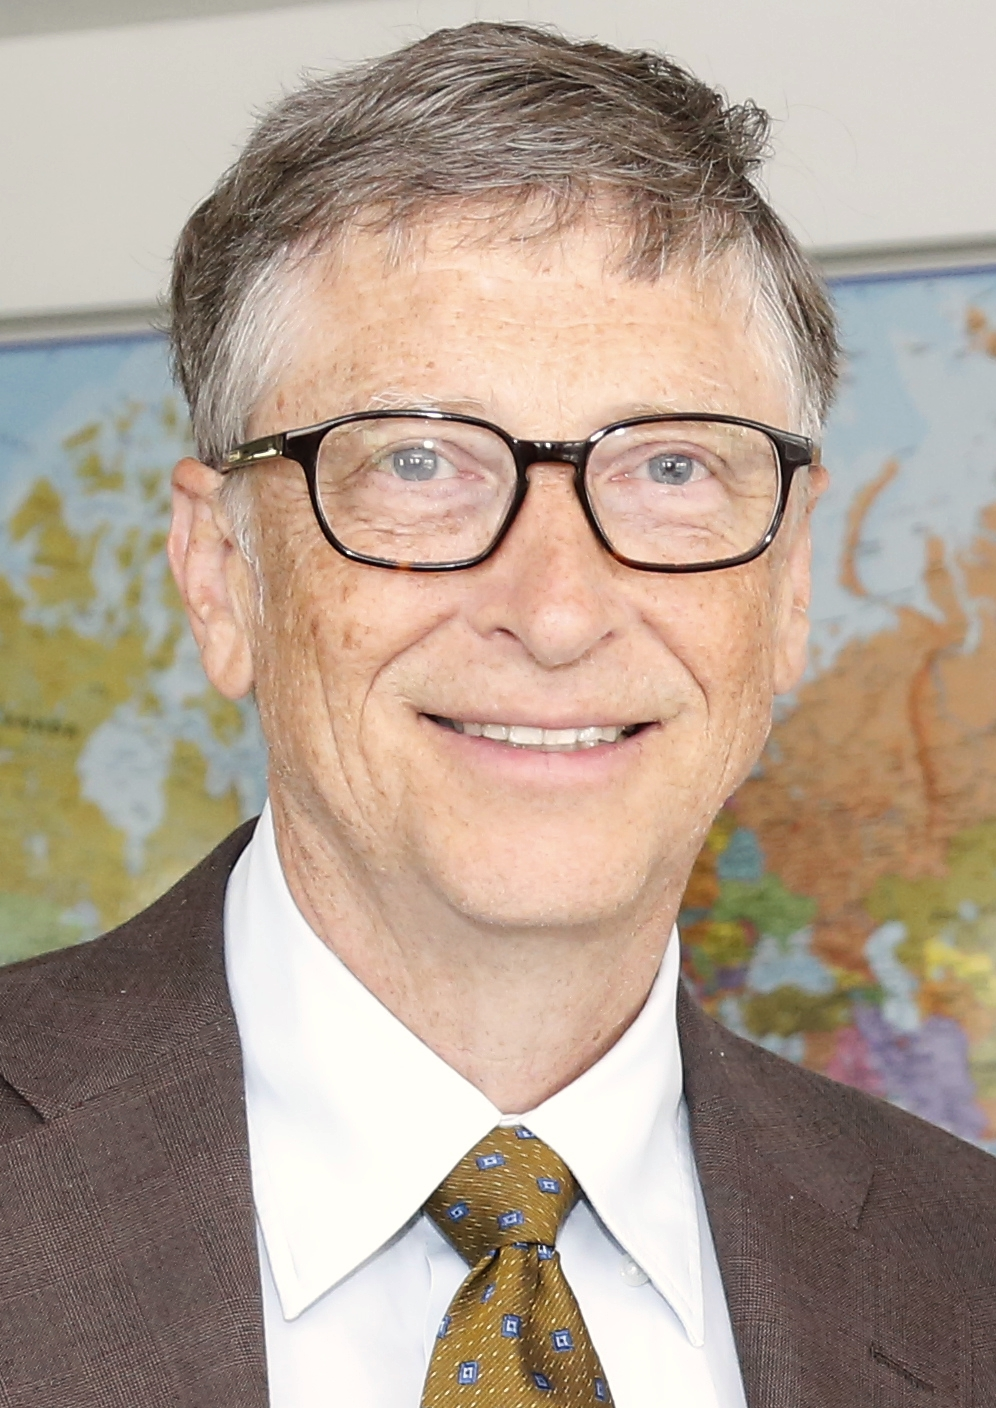 Bill Gates httpsuploadwikimediaorgwikipediacommons11